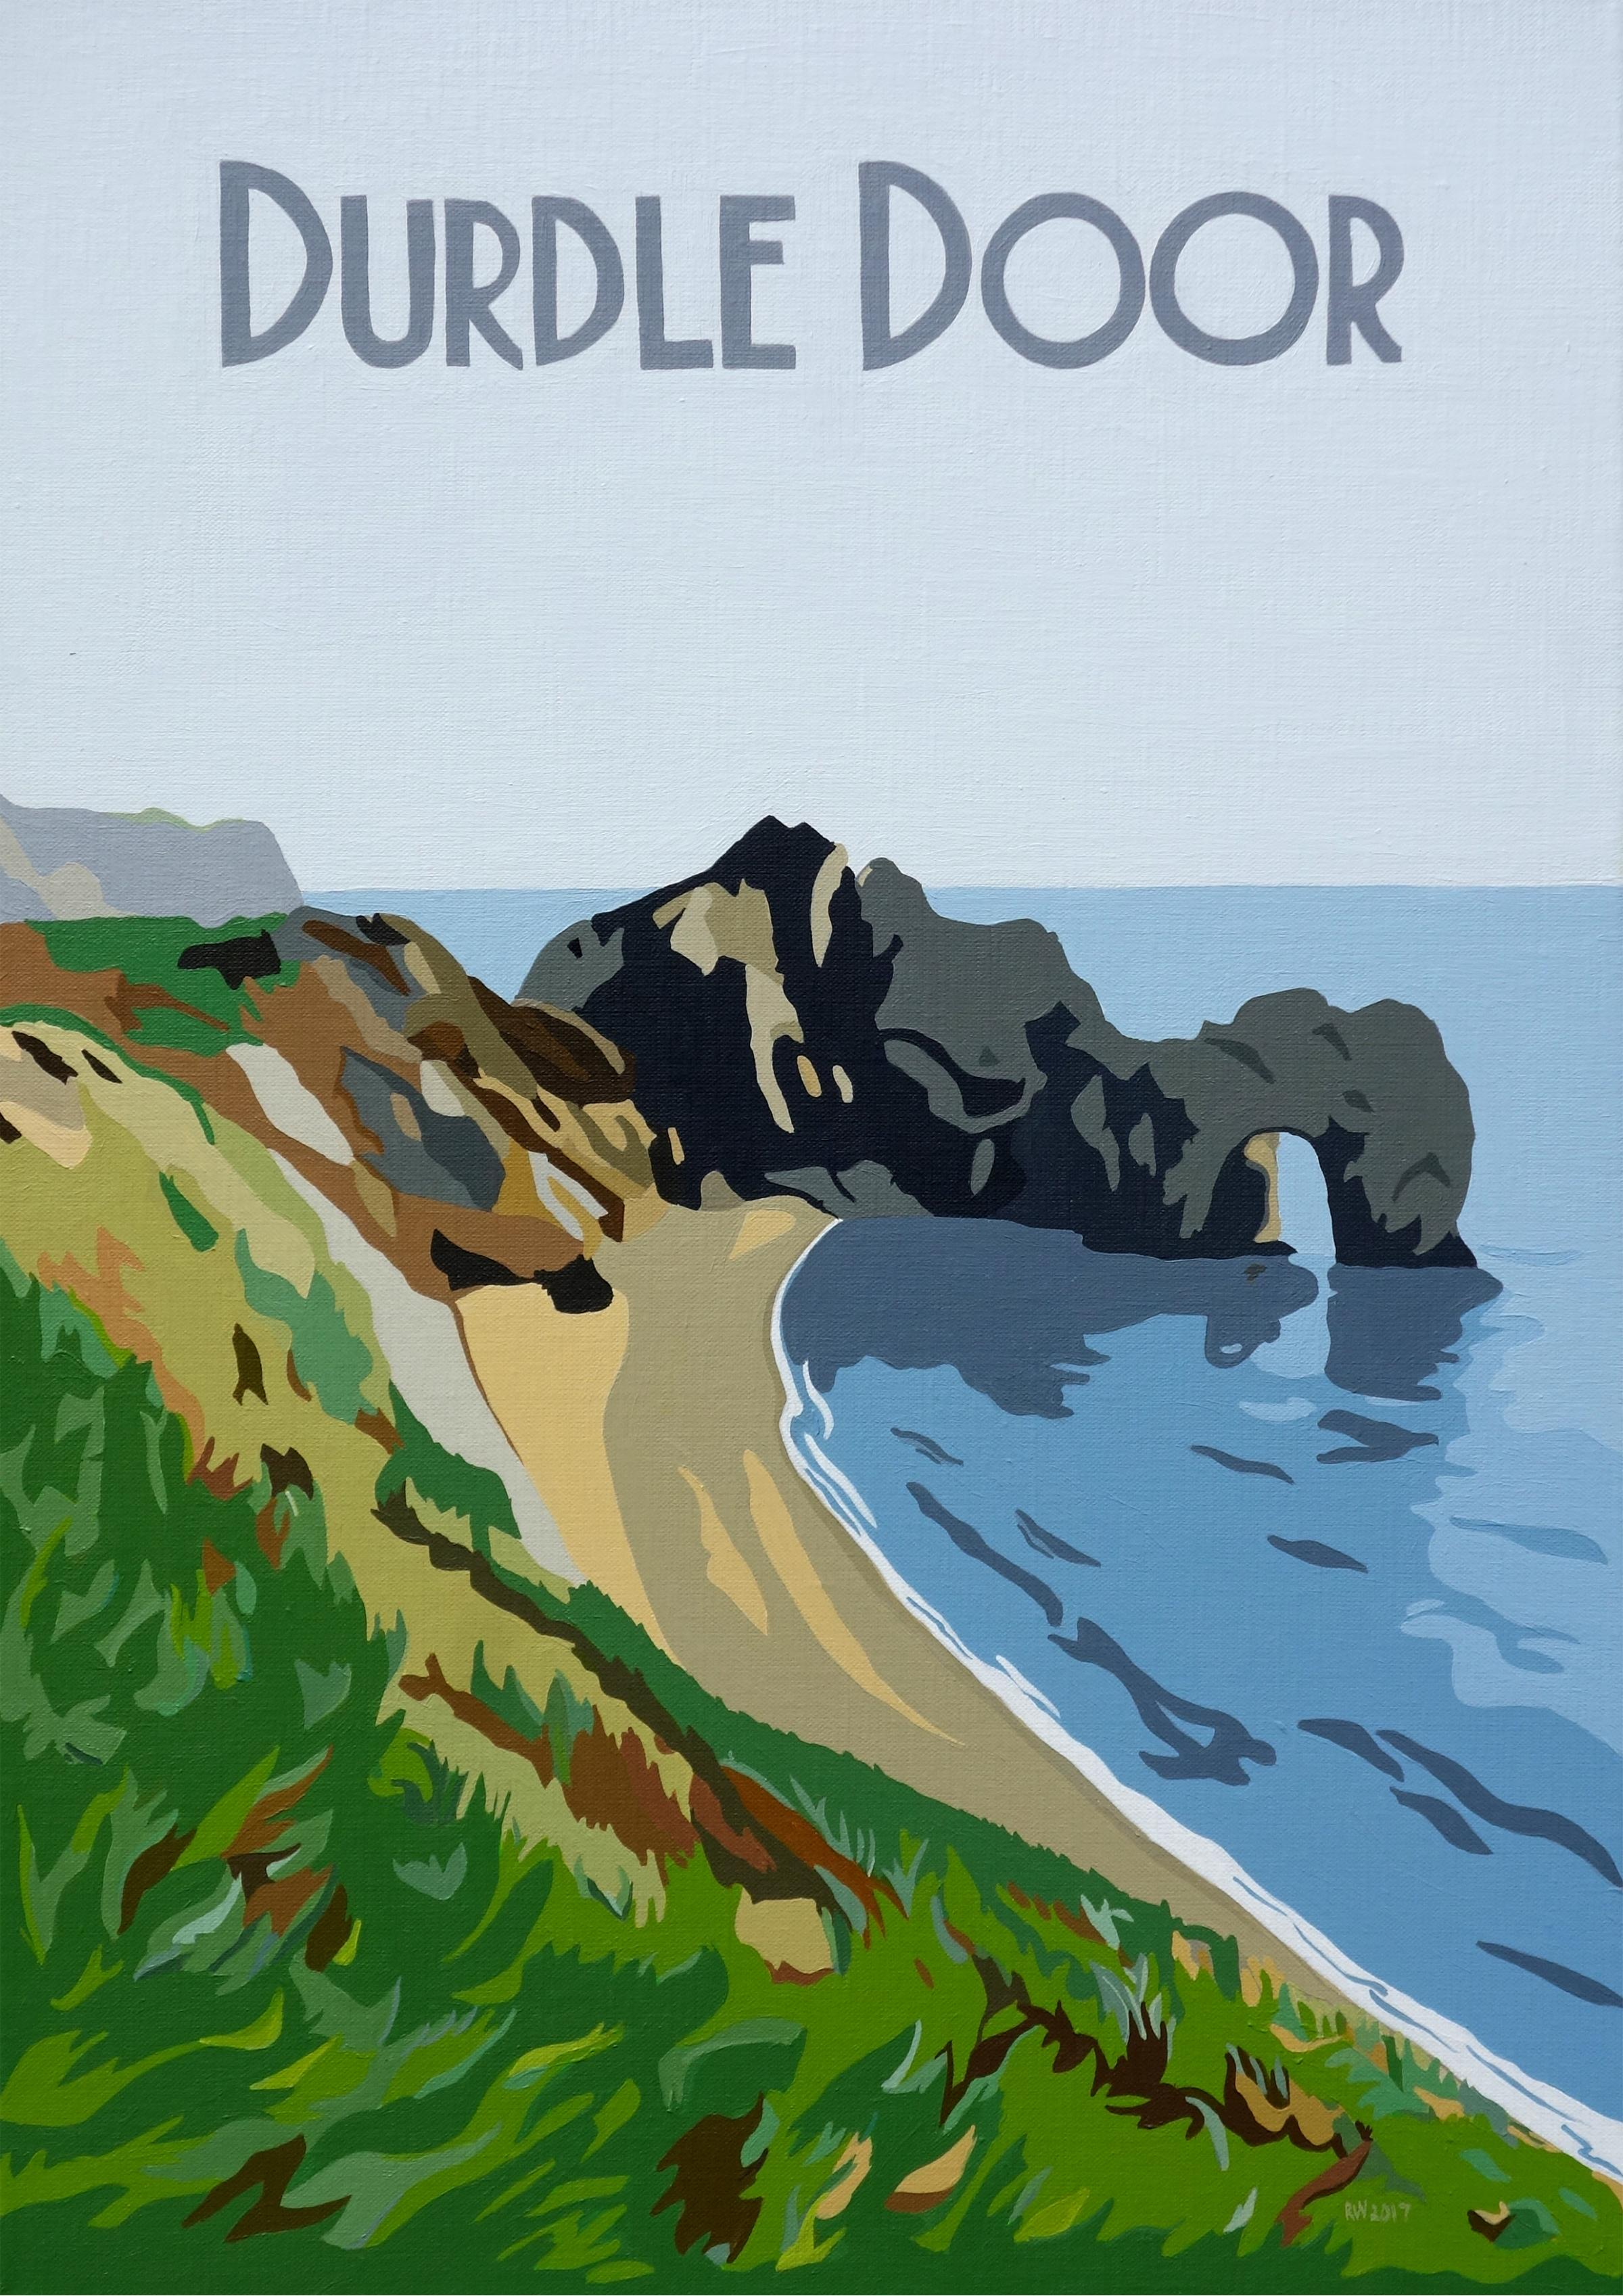 Durdle Door and Sandbanks Ferry turned into retro-style paintings